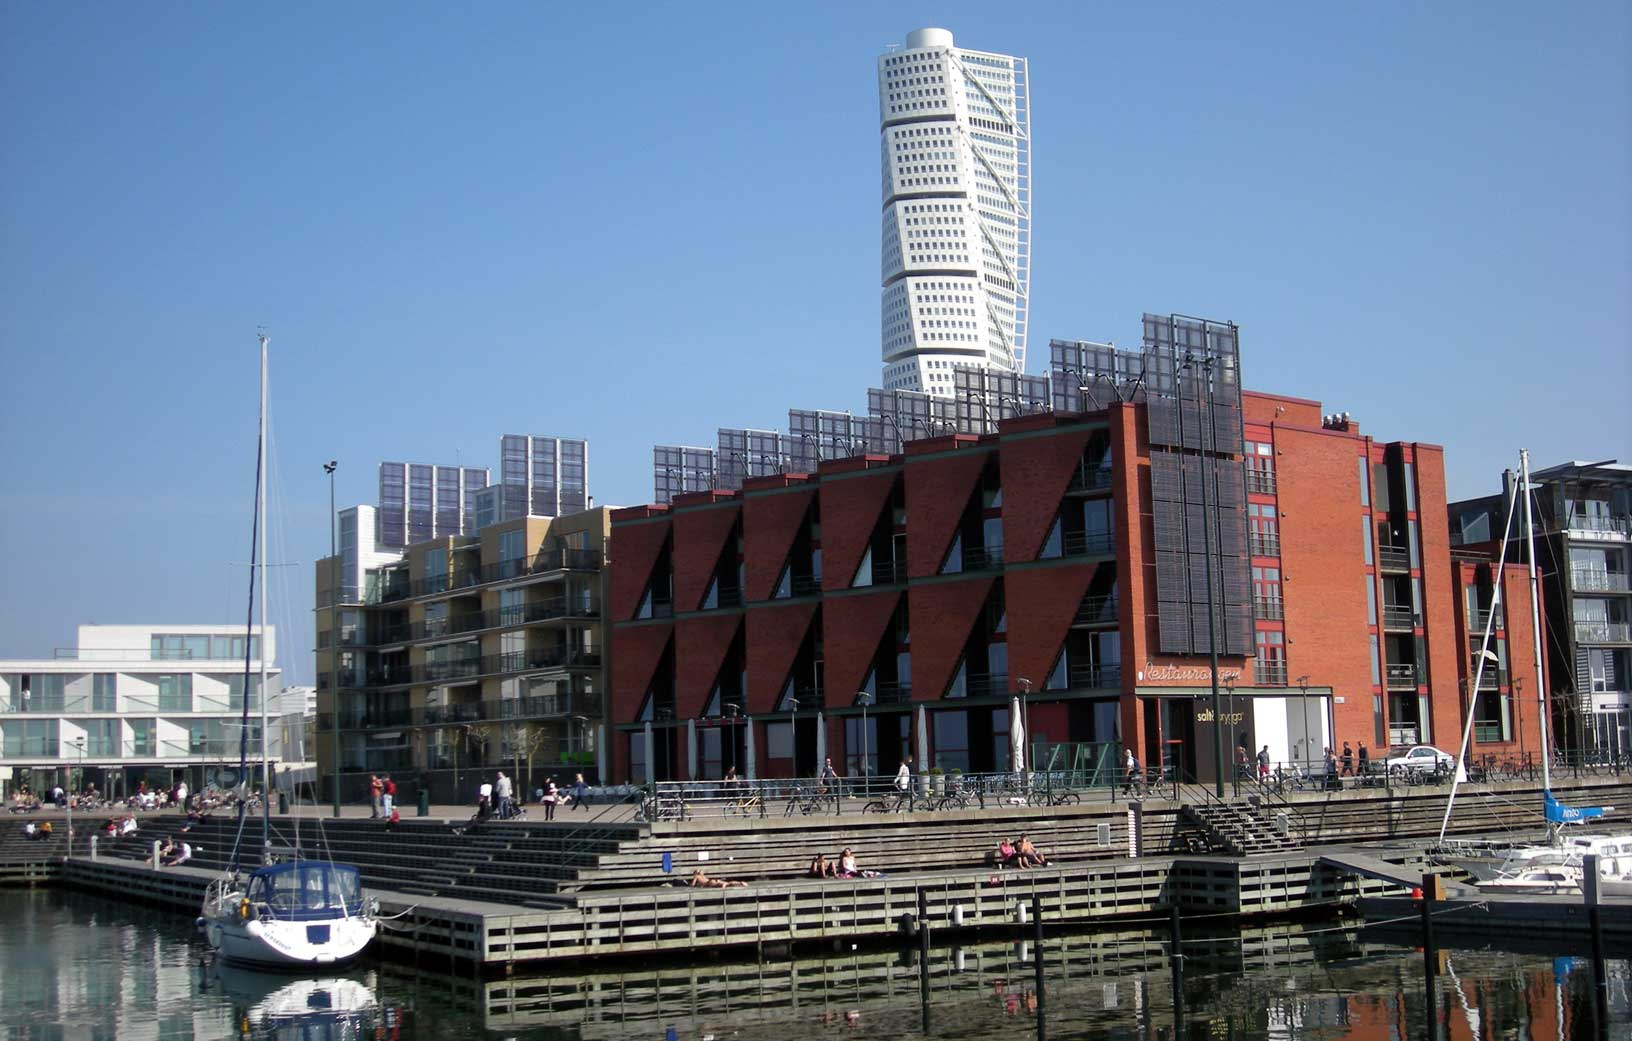 View of Malmö, home city of our student Vidar